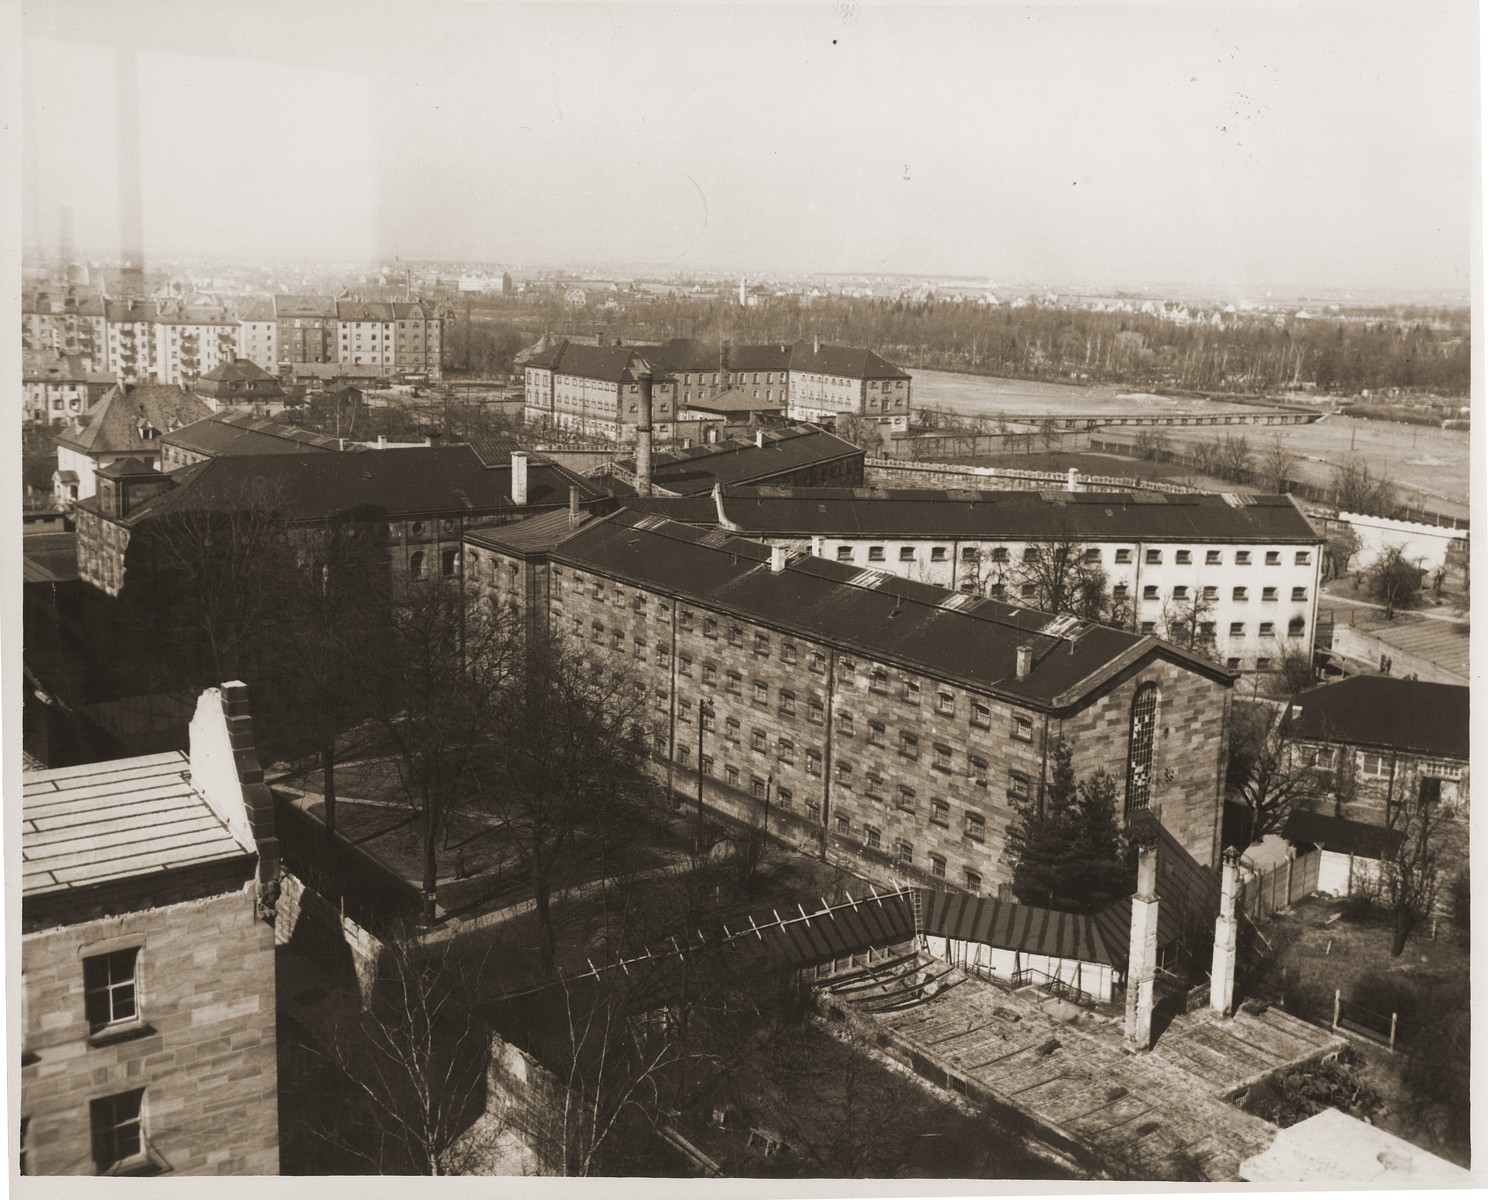 Aerial view of the Nuremberg prison, where the defendants in the International Military Tribunal war crimes trial were confined.